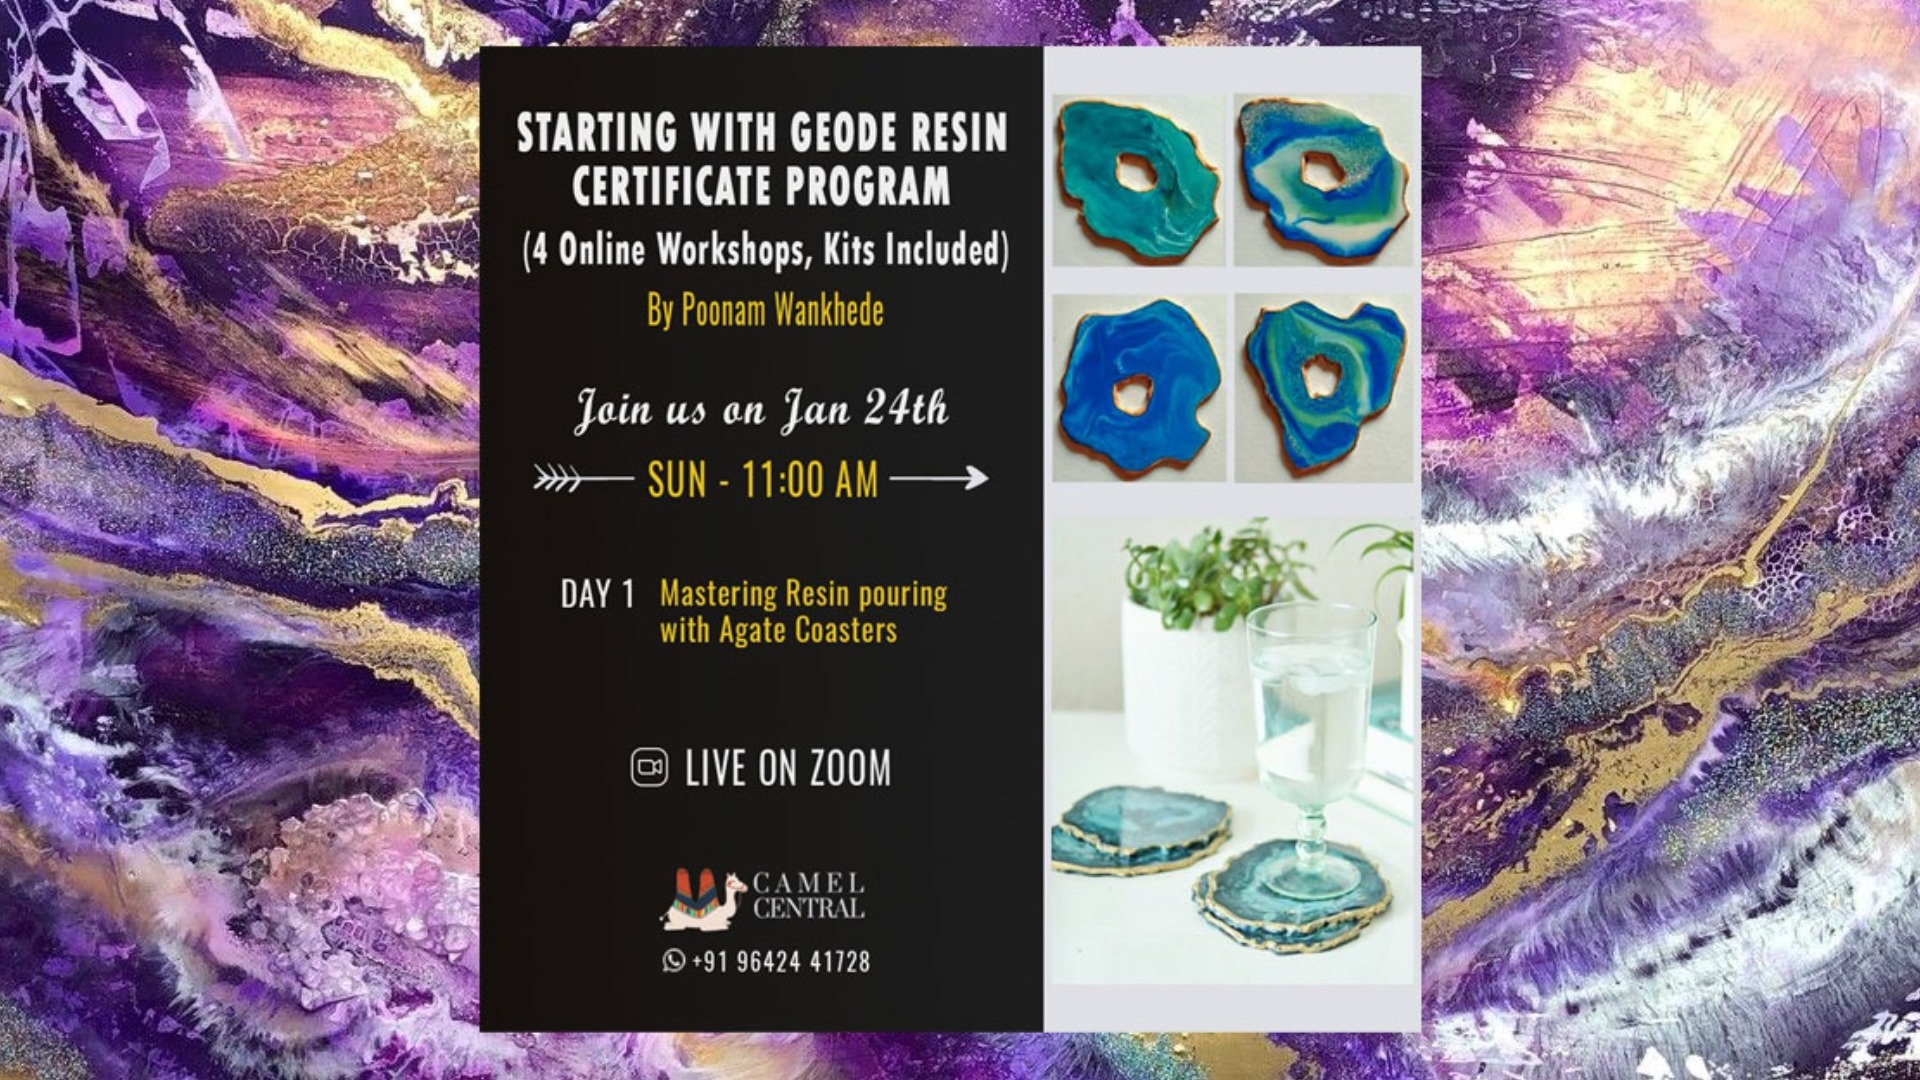 Mastering Resin Pouring With Agate Coasters Online Workshop Kits Included Tickets By Camel Central Sunday January 24 2021 Online Event